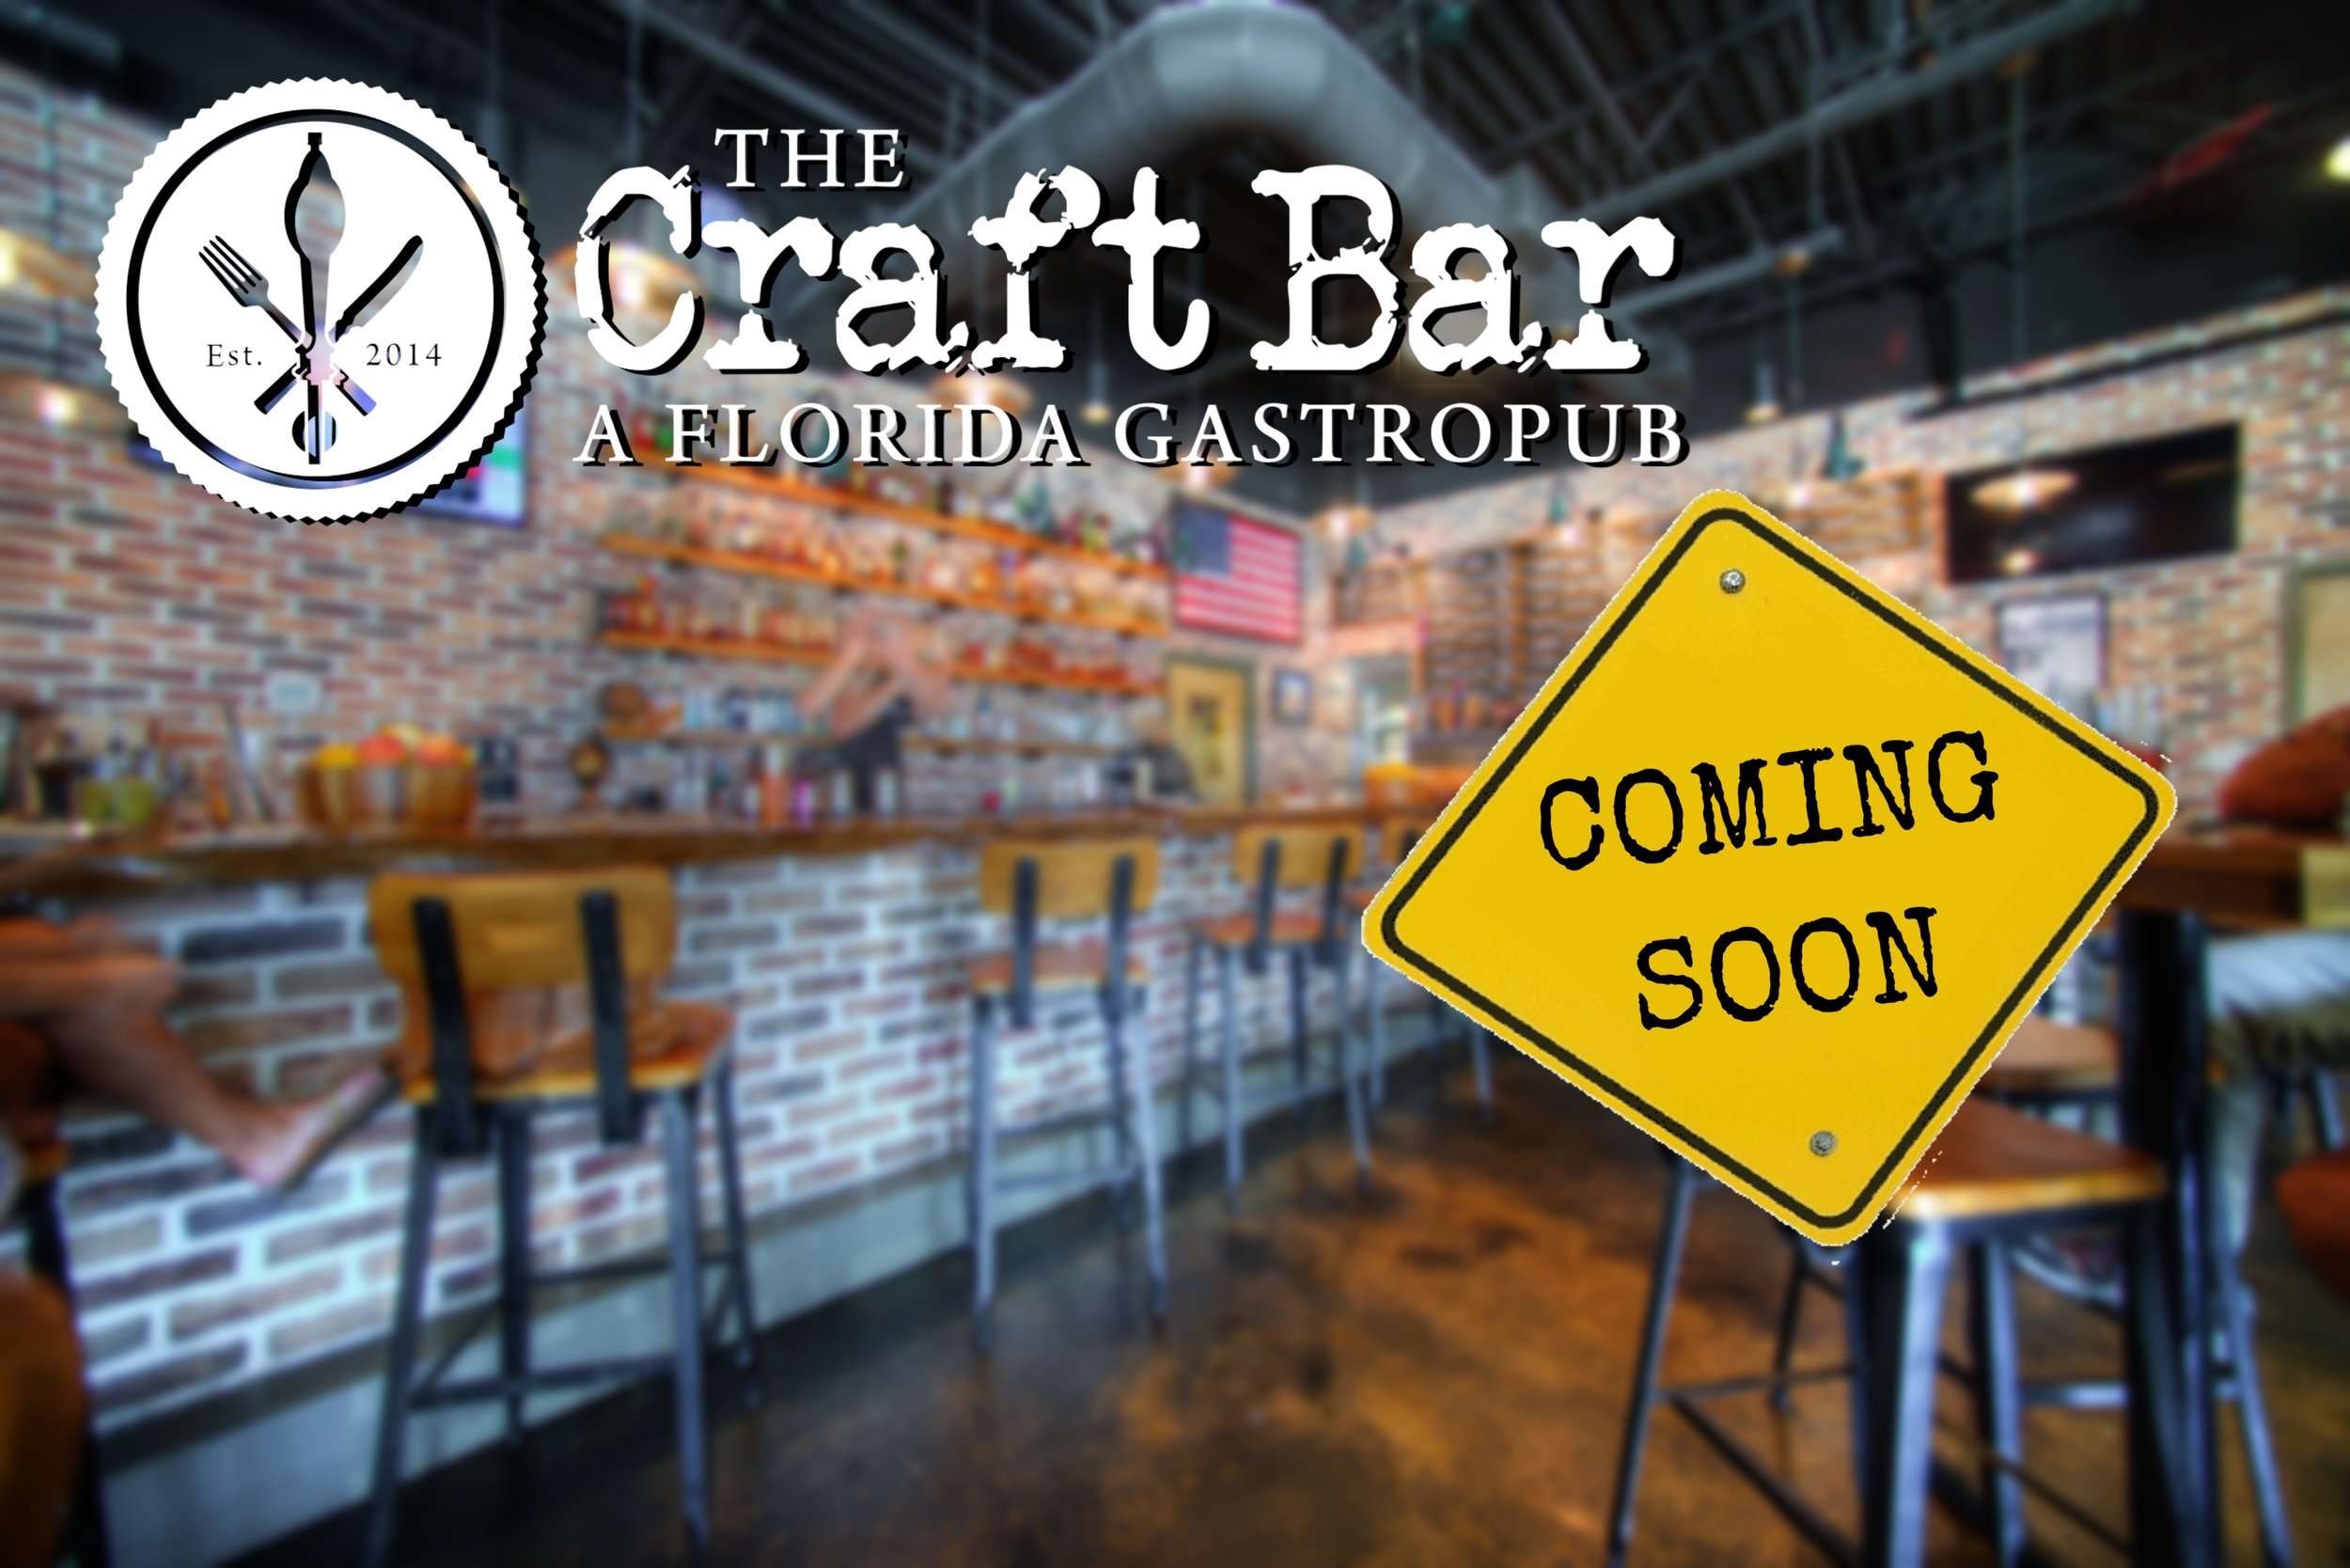 craft bar-SOON.jpg